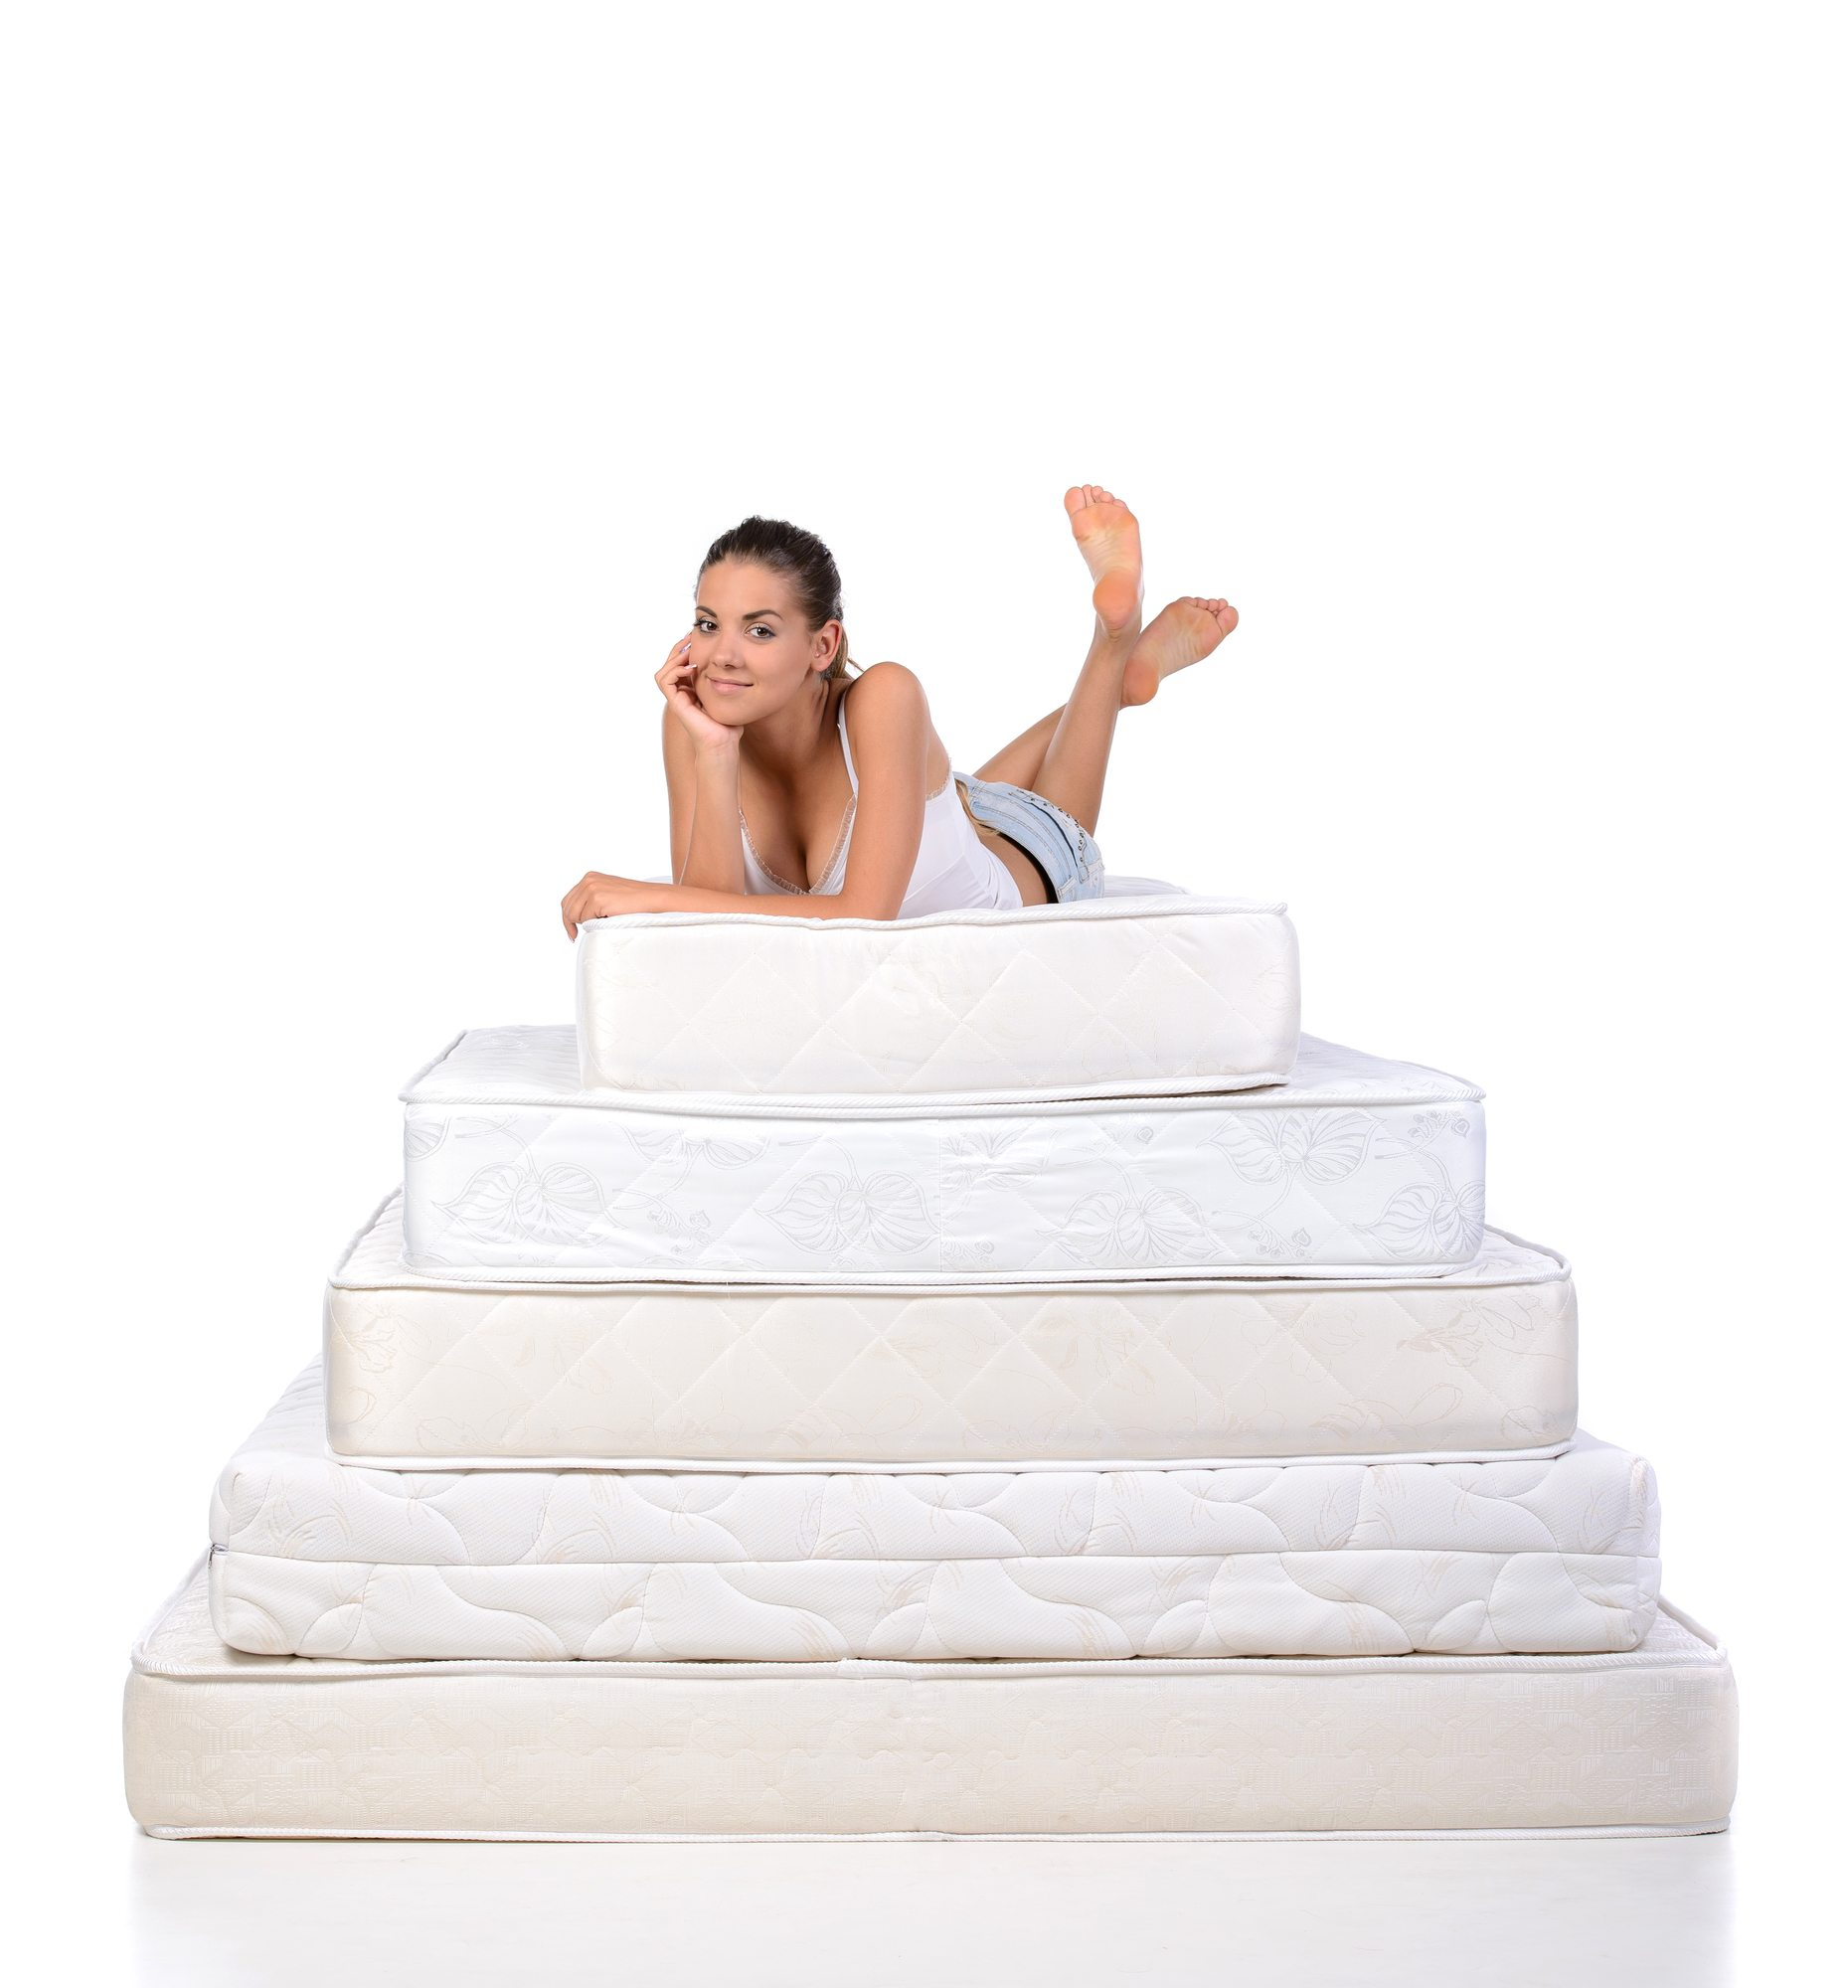 Portrait of a woman lying on many mattresses. Orthopedic mattress.